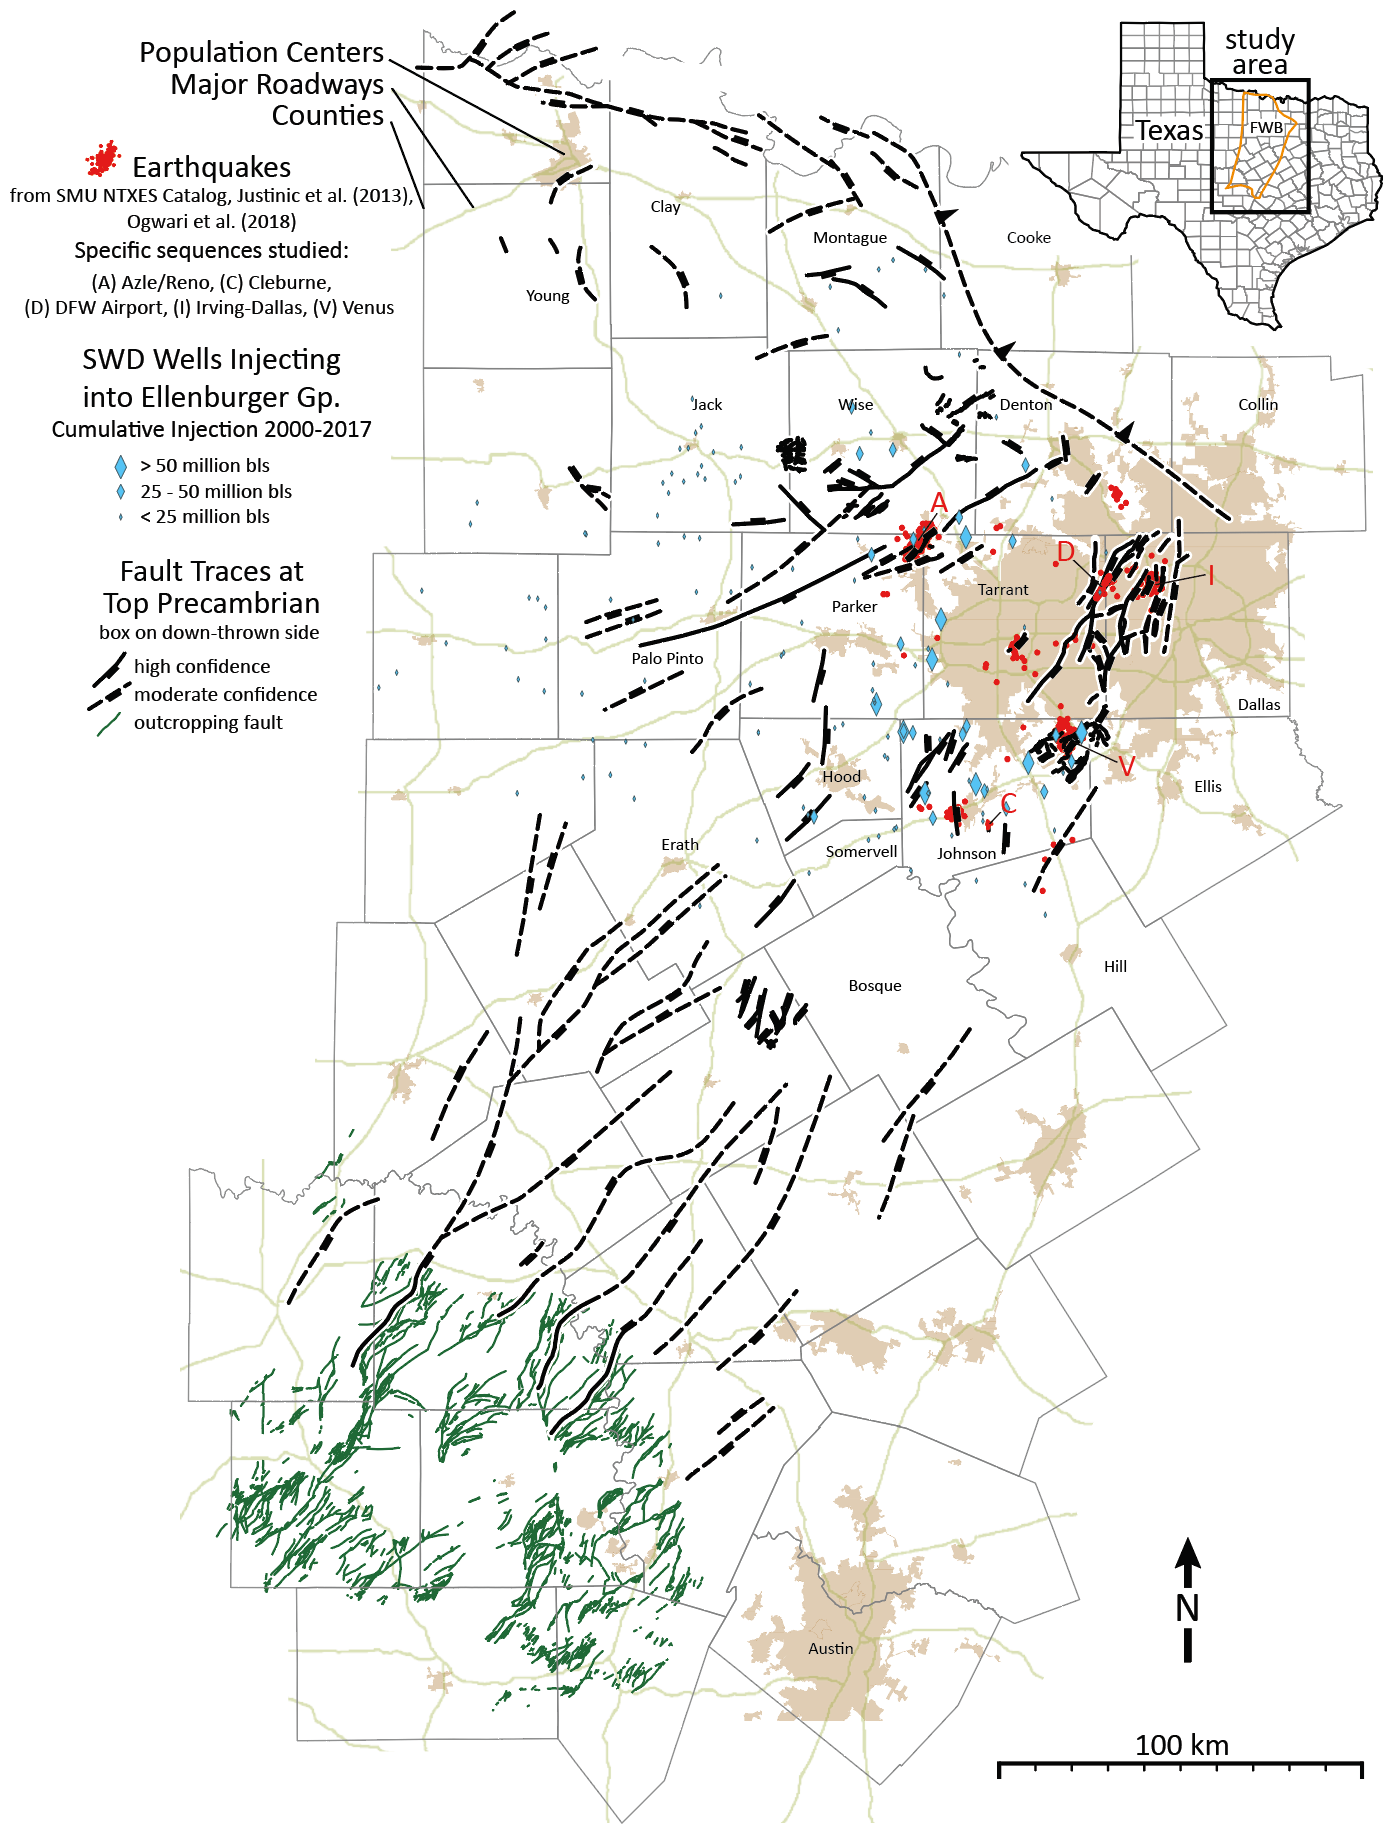 USA: Many Dallas-Fort Worth area faults have the potential ... Map Dallas Fort Worth Area on abilene area map, washington d.c. area map, dallas city area map, fort worth zip code map, fort myers area map, fort worth tx map, fort lauderdale area map, ft.worth map, fort worth stockyards map, dfw map, dallas tx area map, garland area map, fort worth city map, dallas at&t stadium area map, fort worth zoo map, downtown fort worth map, dallas area map including suburbs, dallas love field area map, harrisburg area map, dallas denton map,